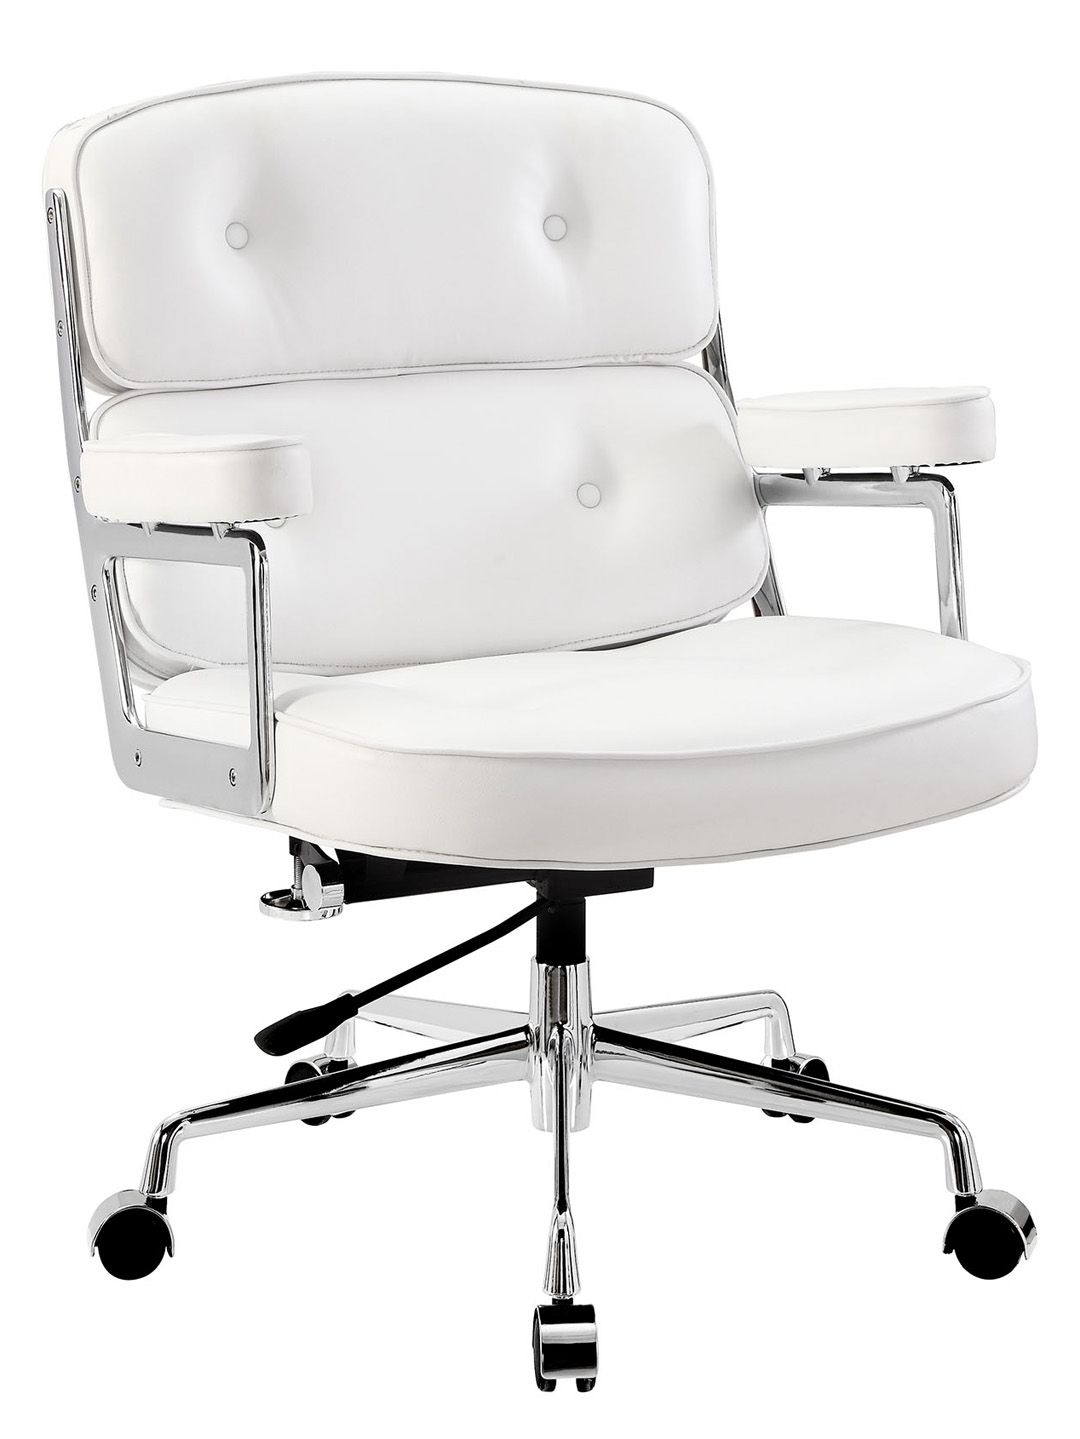 pearl river modern ny - remix office chair by pearl river modern ny at gilt hâ ¤o